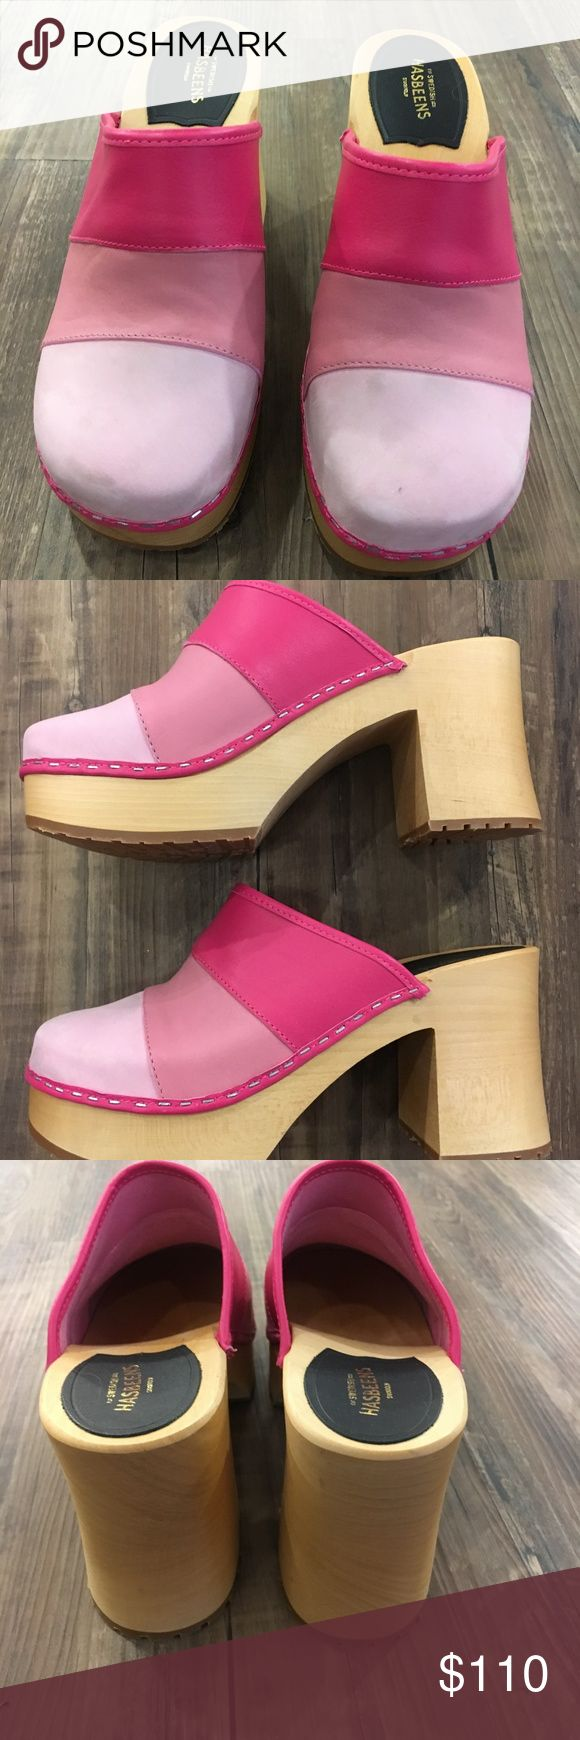 Swedish Hasbeens Color Combo Slip In in Pink Heel is 9.5 cm high (3.7 inches) Lime-tree wooden heel with rubber sole Italian natural grain leather, chrome free Swedish Hasbeens Shoes